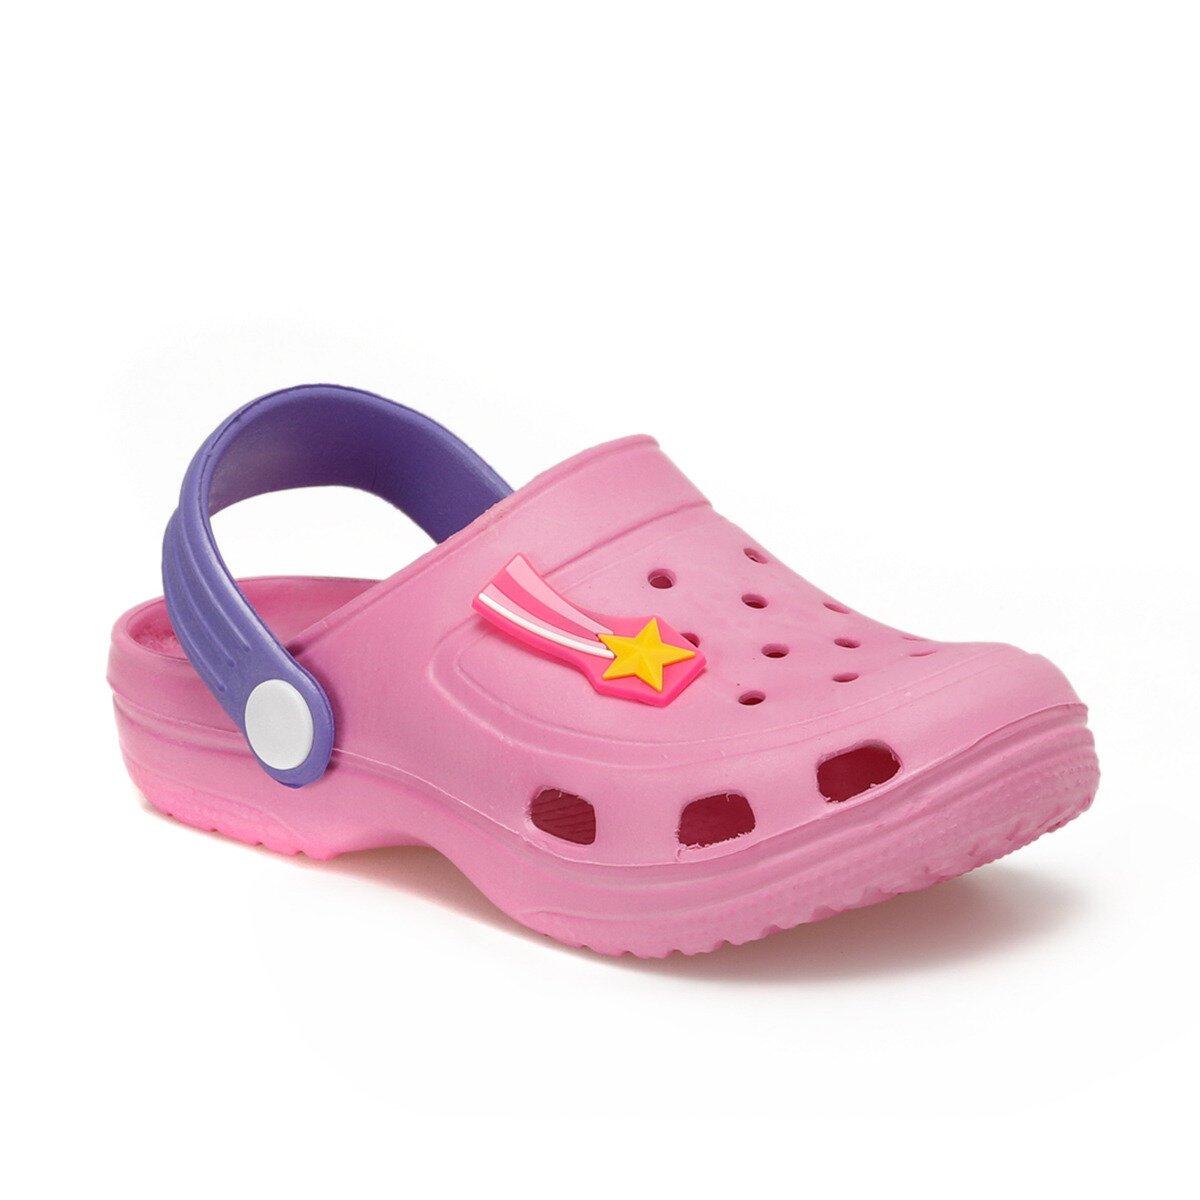 FLO FROG X Pink Female Child Sea Shoes KINETIX